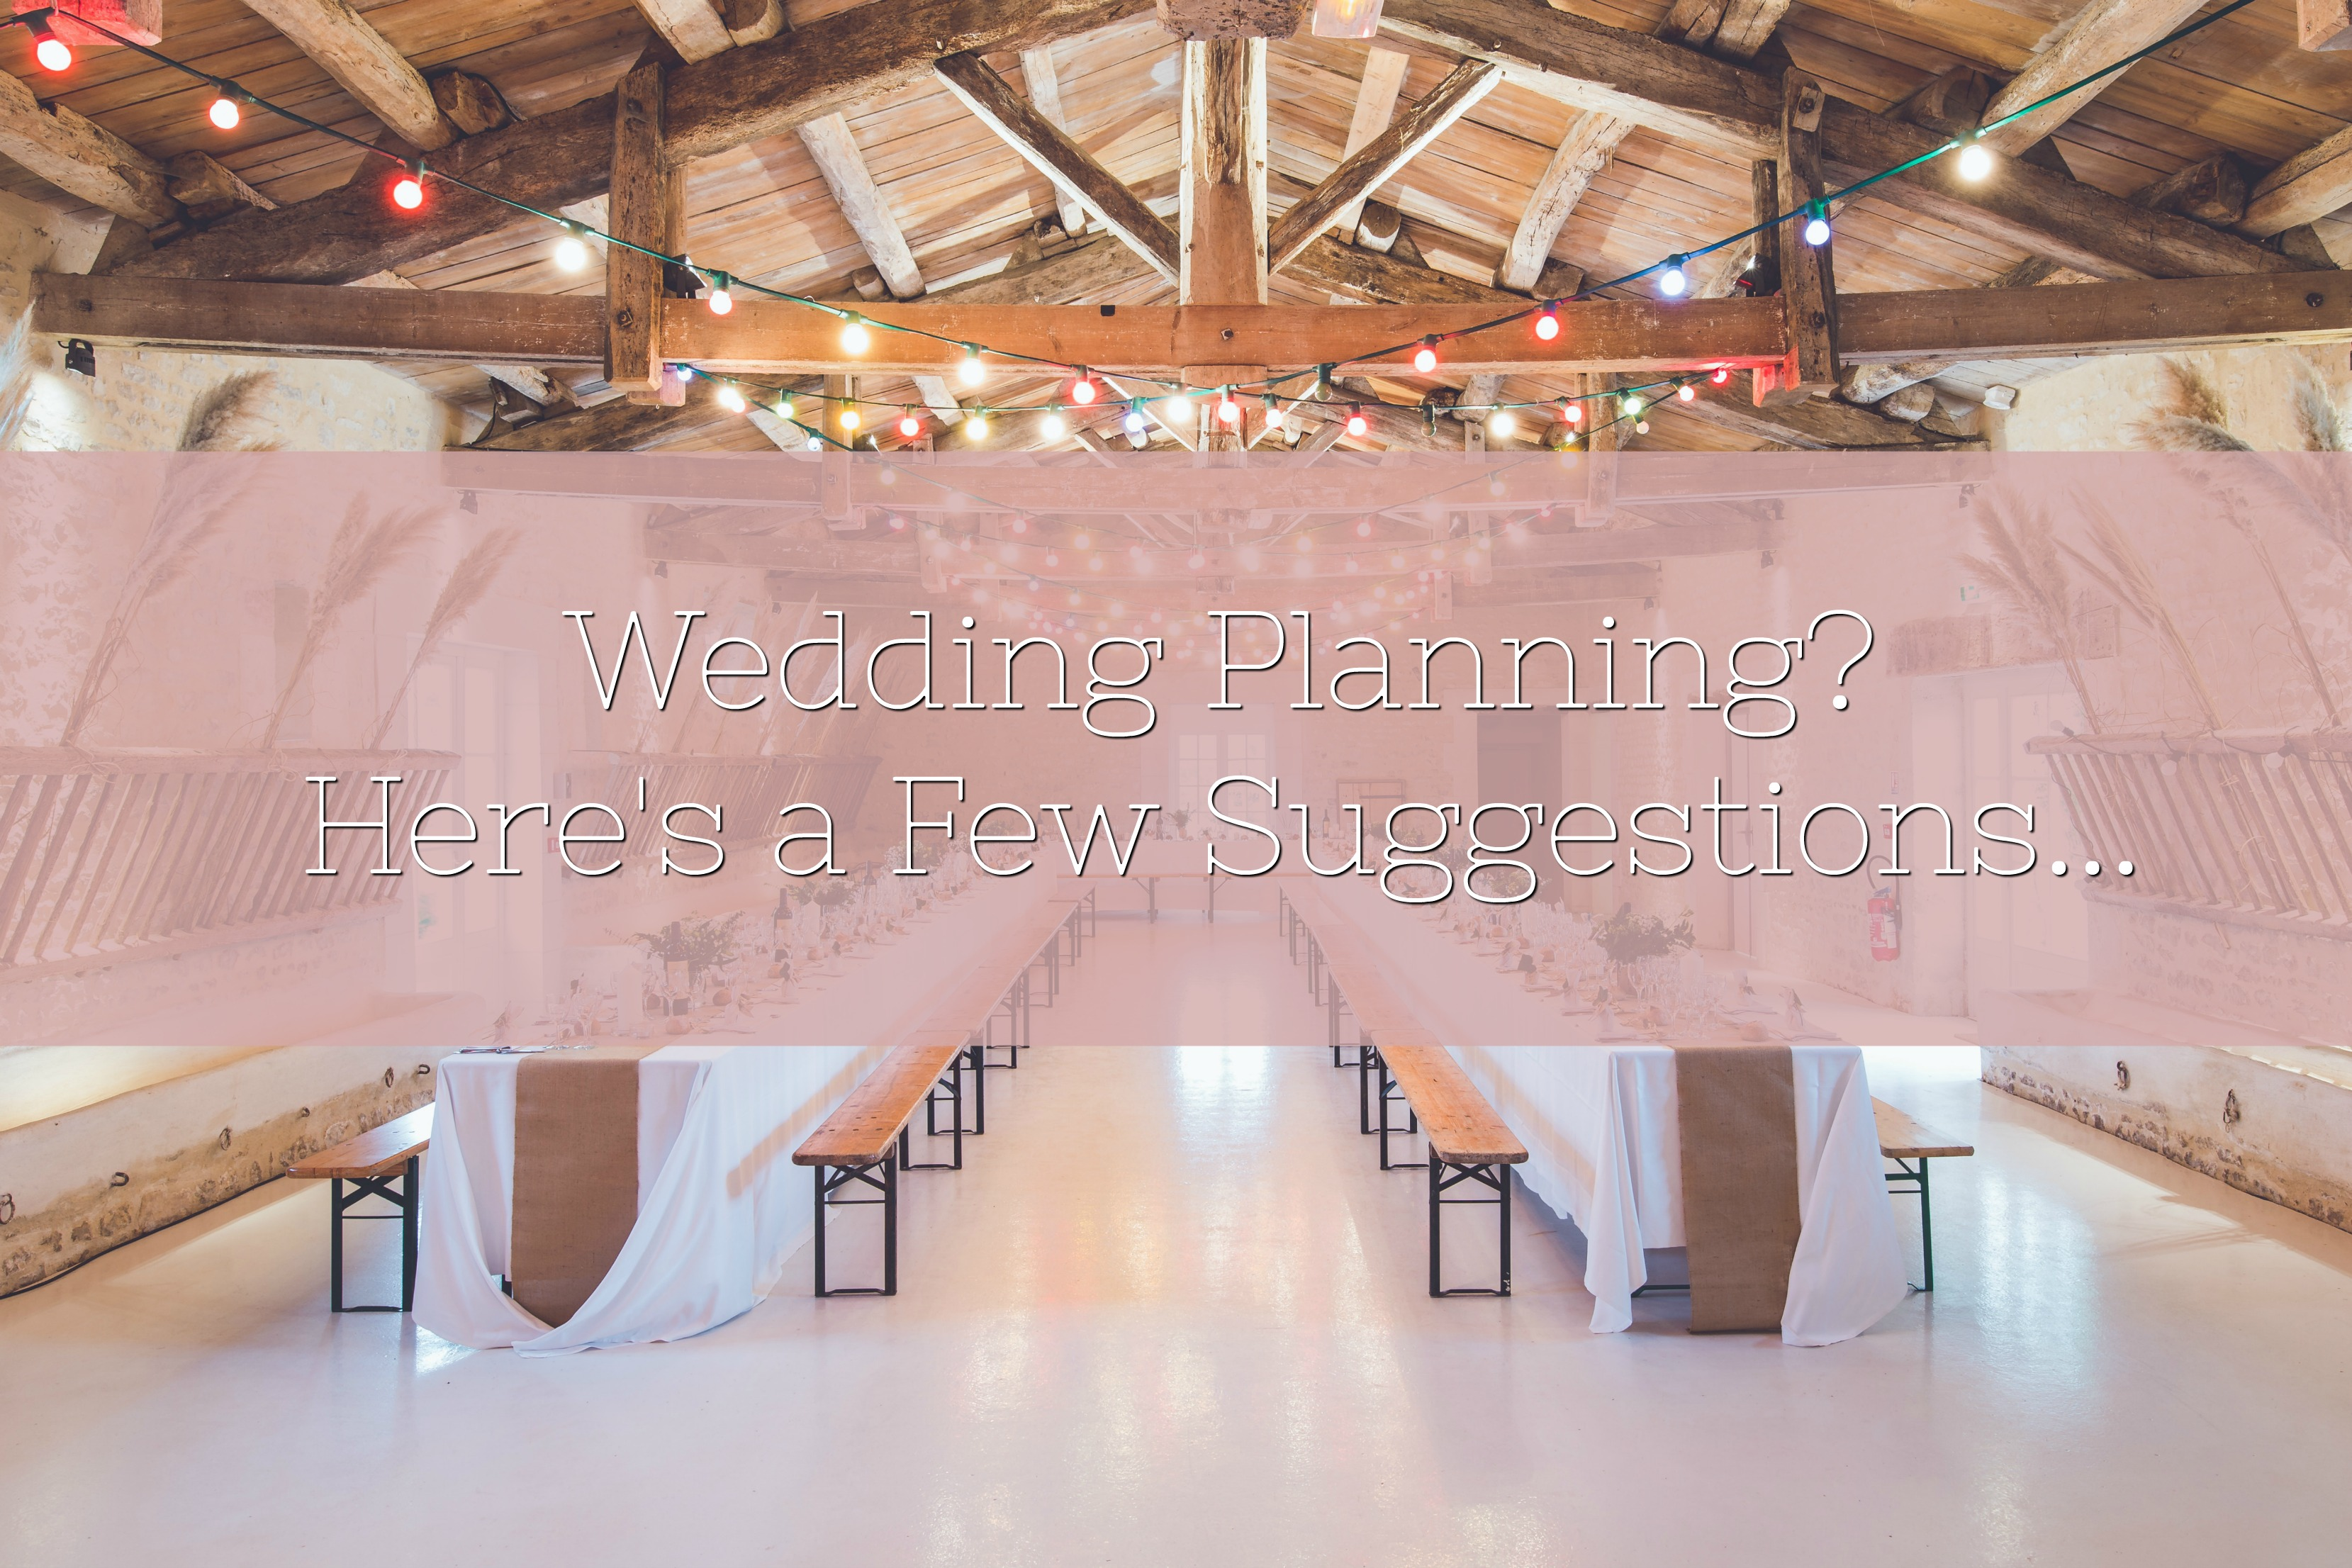 Wedding Planning? Here's a Few Suggestions...